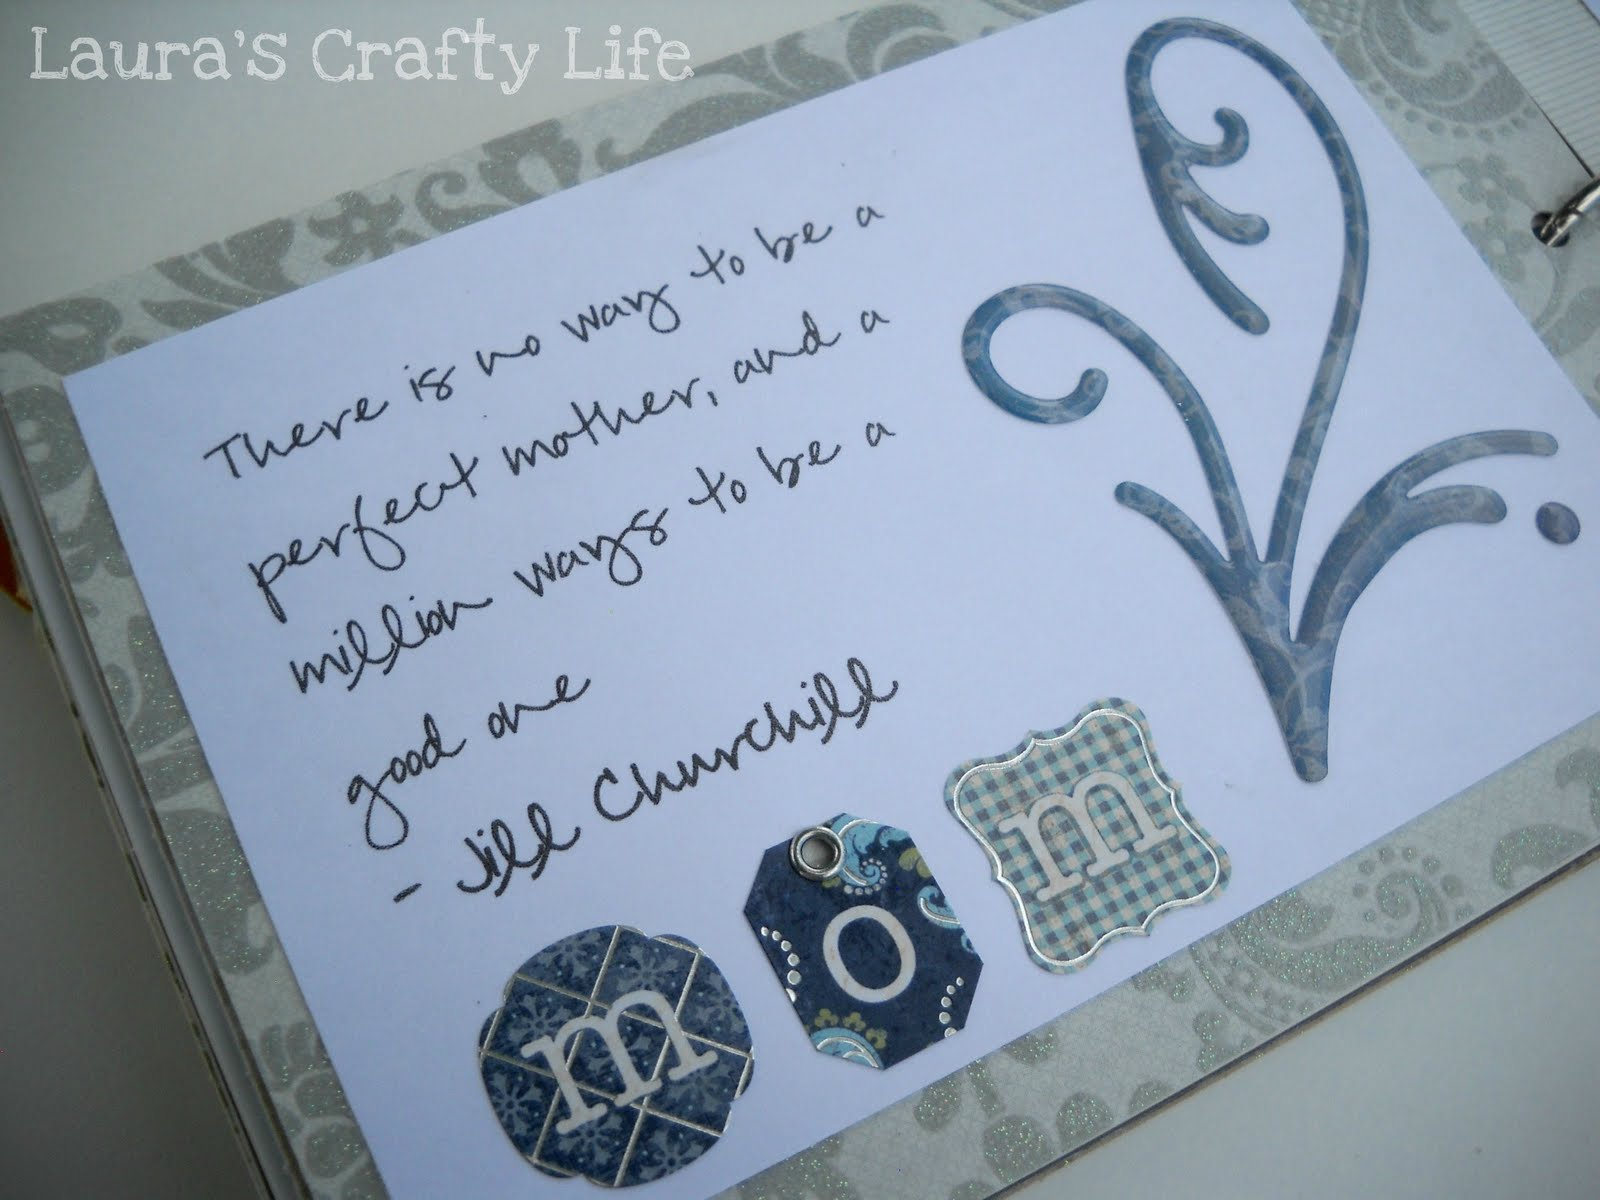 Quotes For Baby Shower Baby Shower Advice Book  Laura's Crafty Life